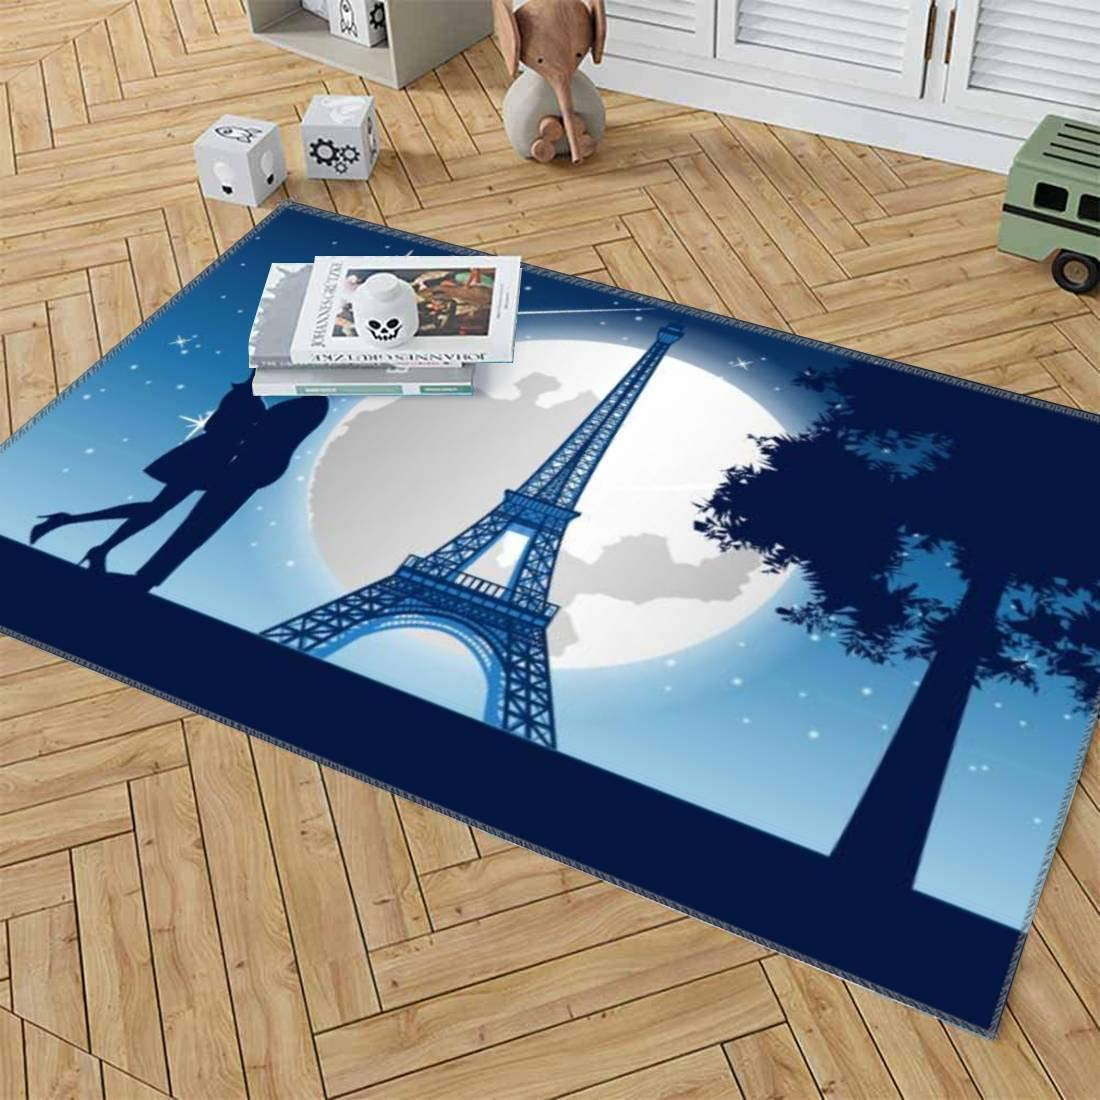 Area Rugs Couple Hug Together Around With Skyscraper Near Tree And Eiffel Tower Baby Rug For Crawling Kids Play Mat Room Decor Carpet Gift Game Floor Non Slip Pad Yoga Mats Throw